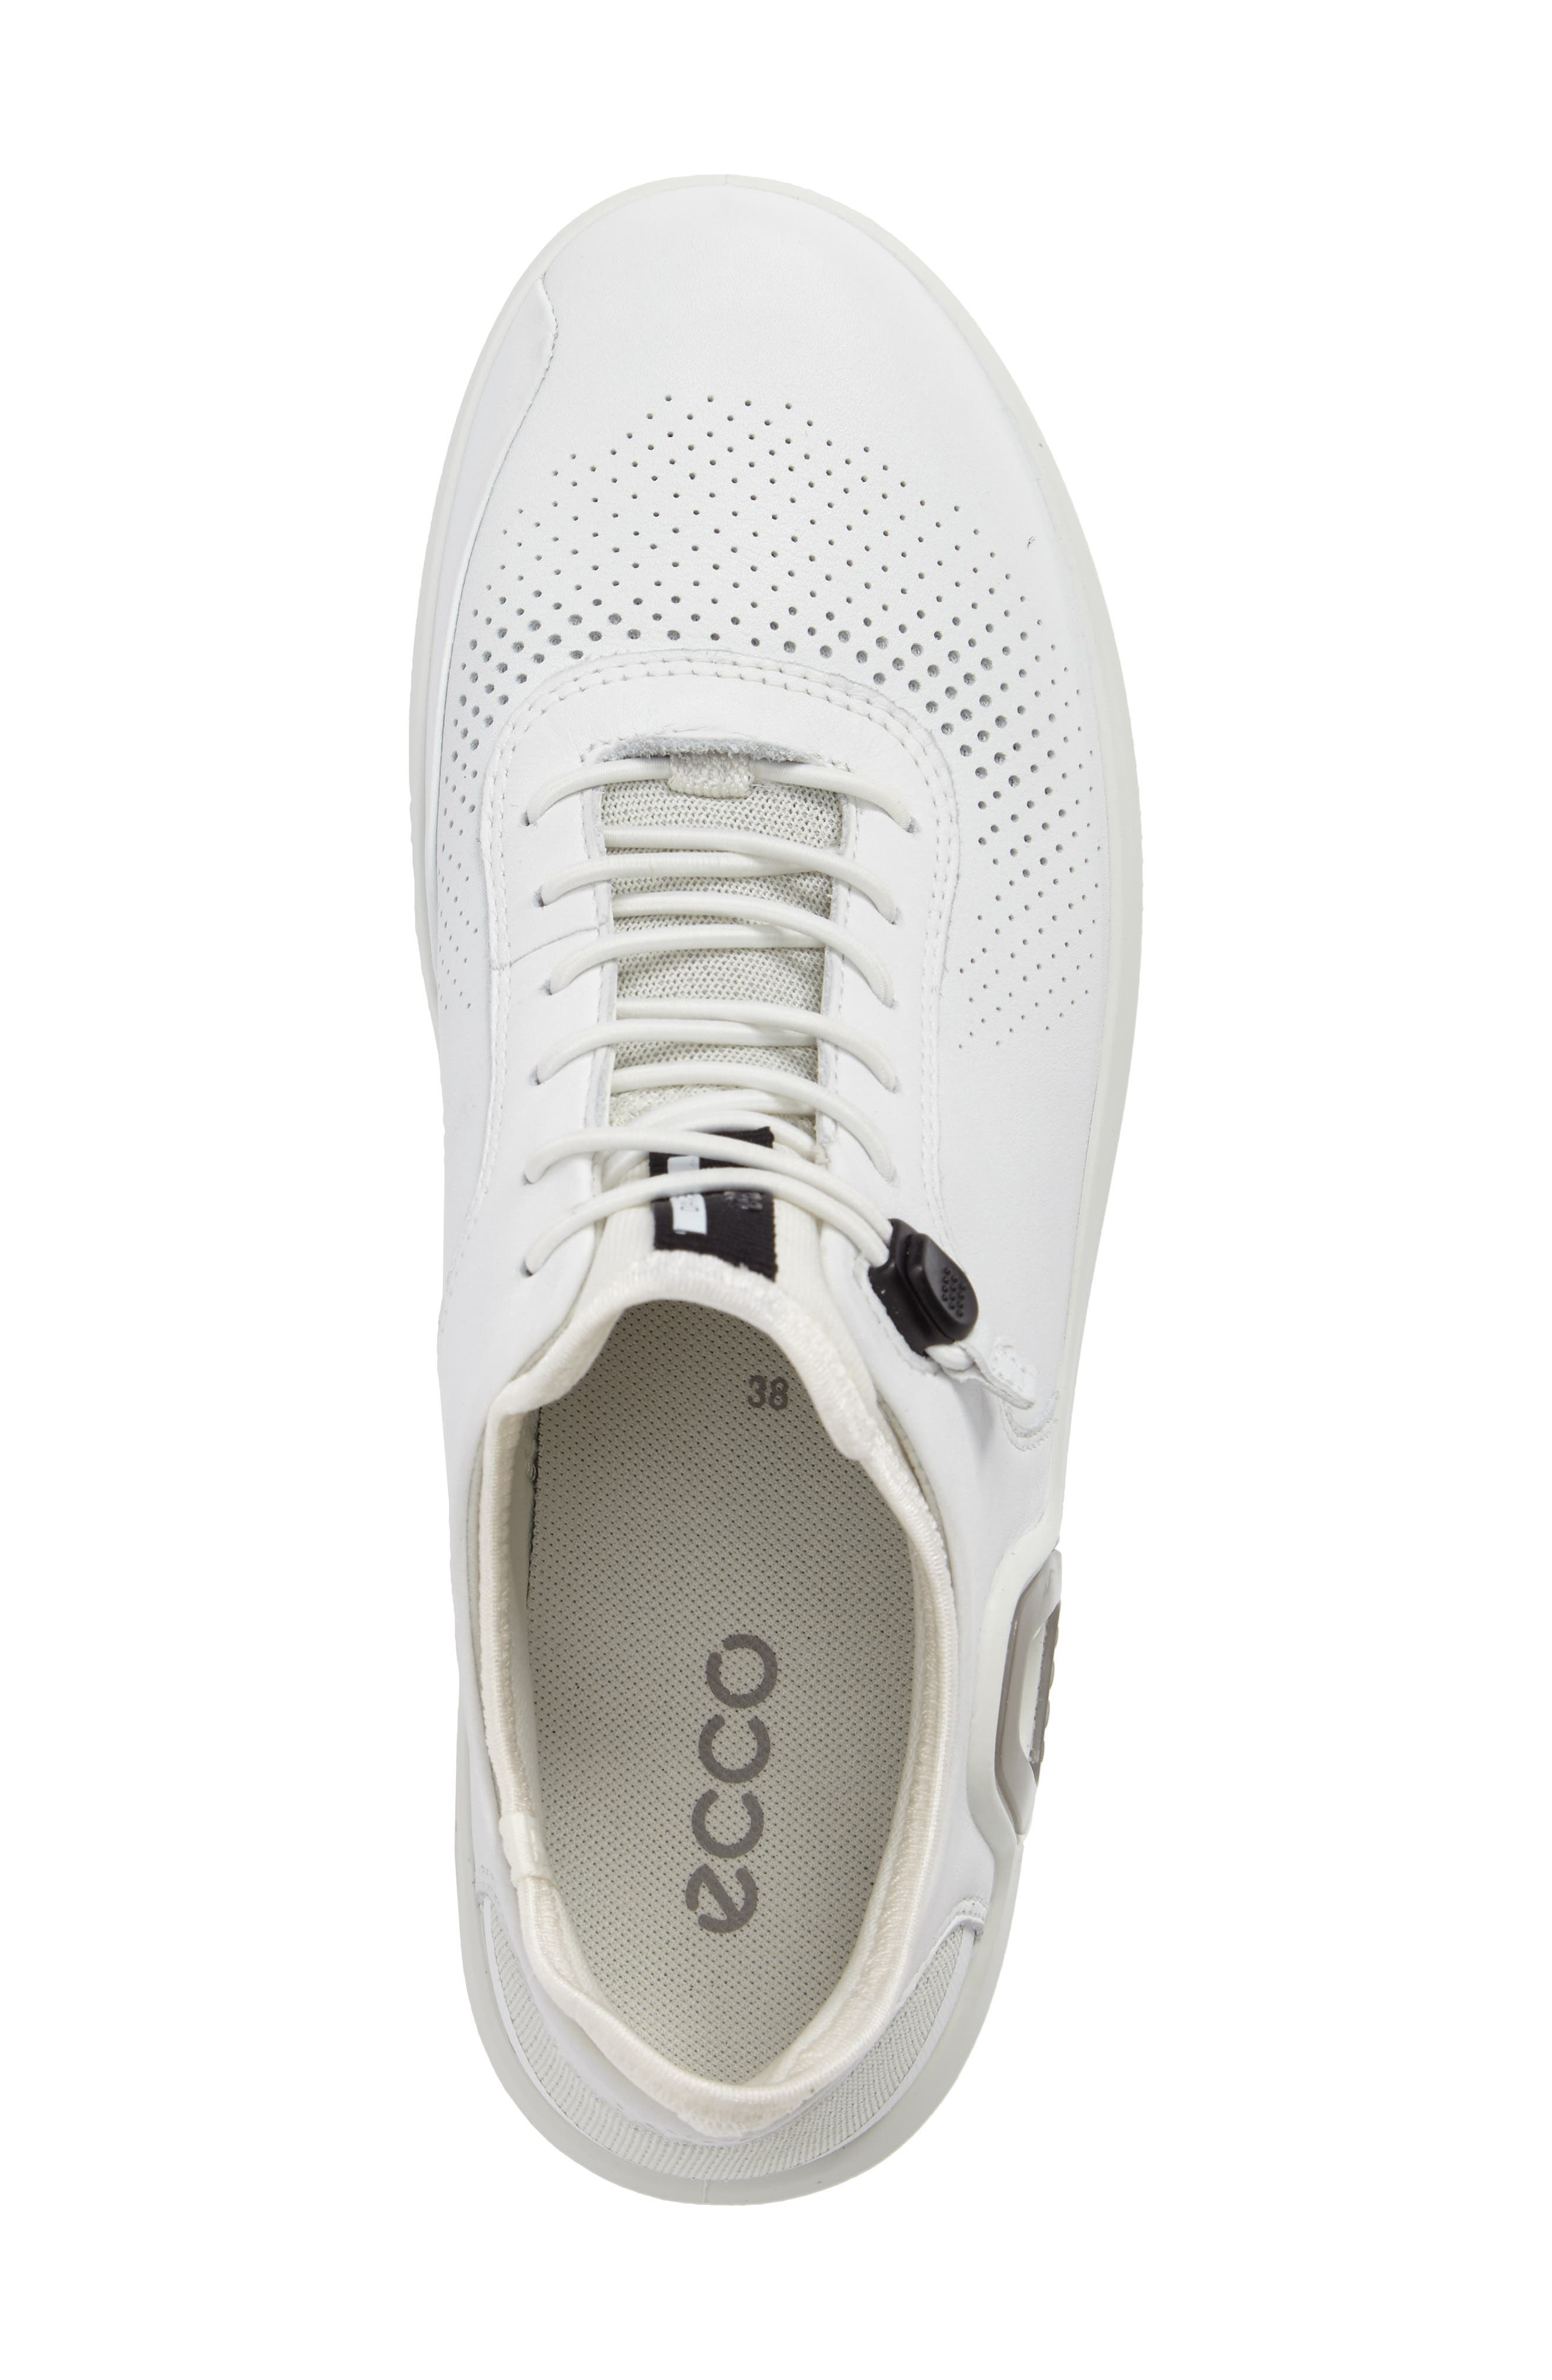 Intrinsic 3 Sneaker,                             Alternate thumbnail 5, color,                             WHITE LEATHER